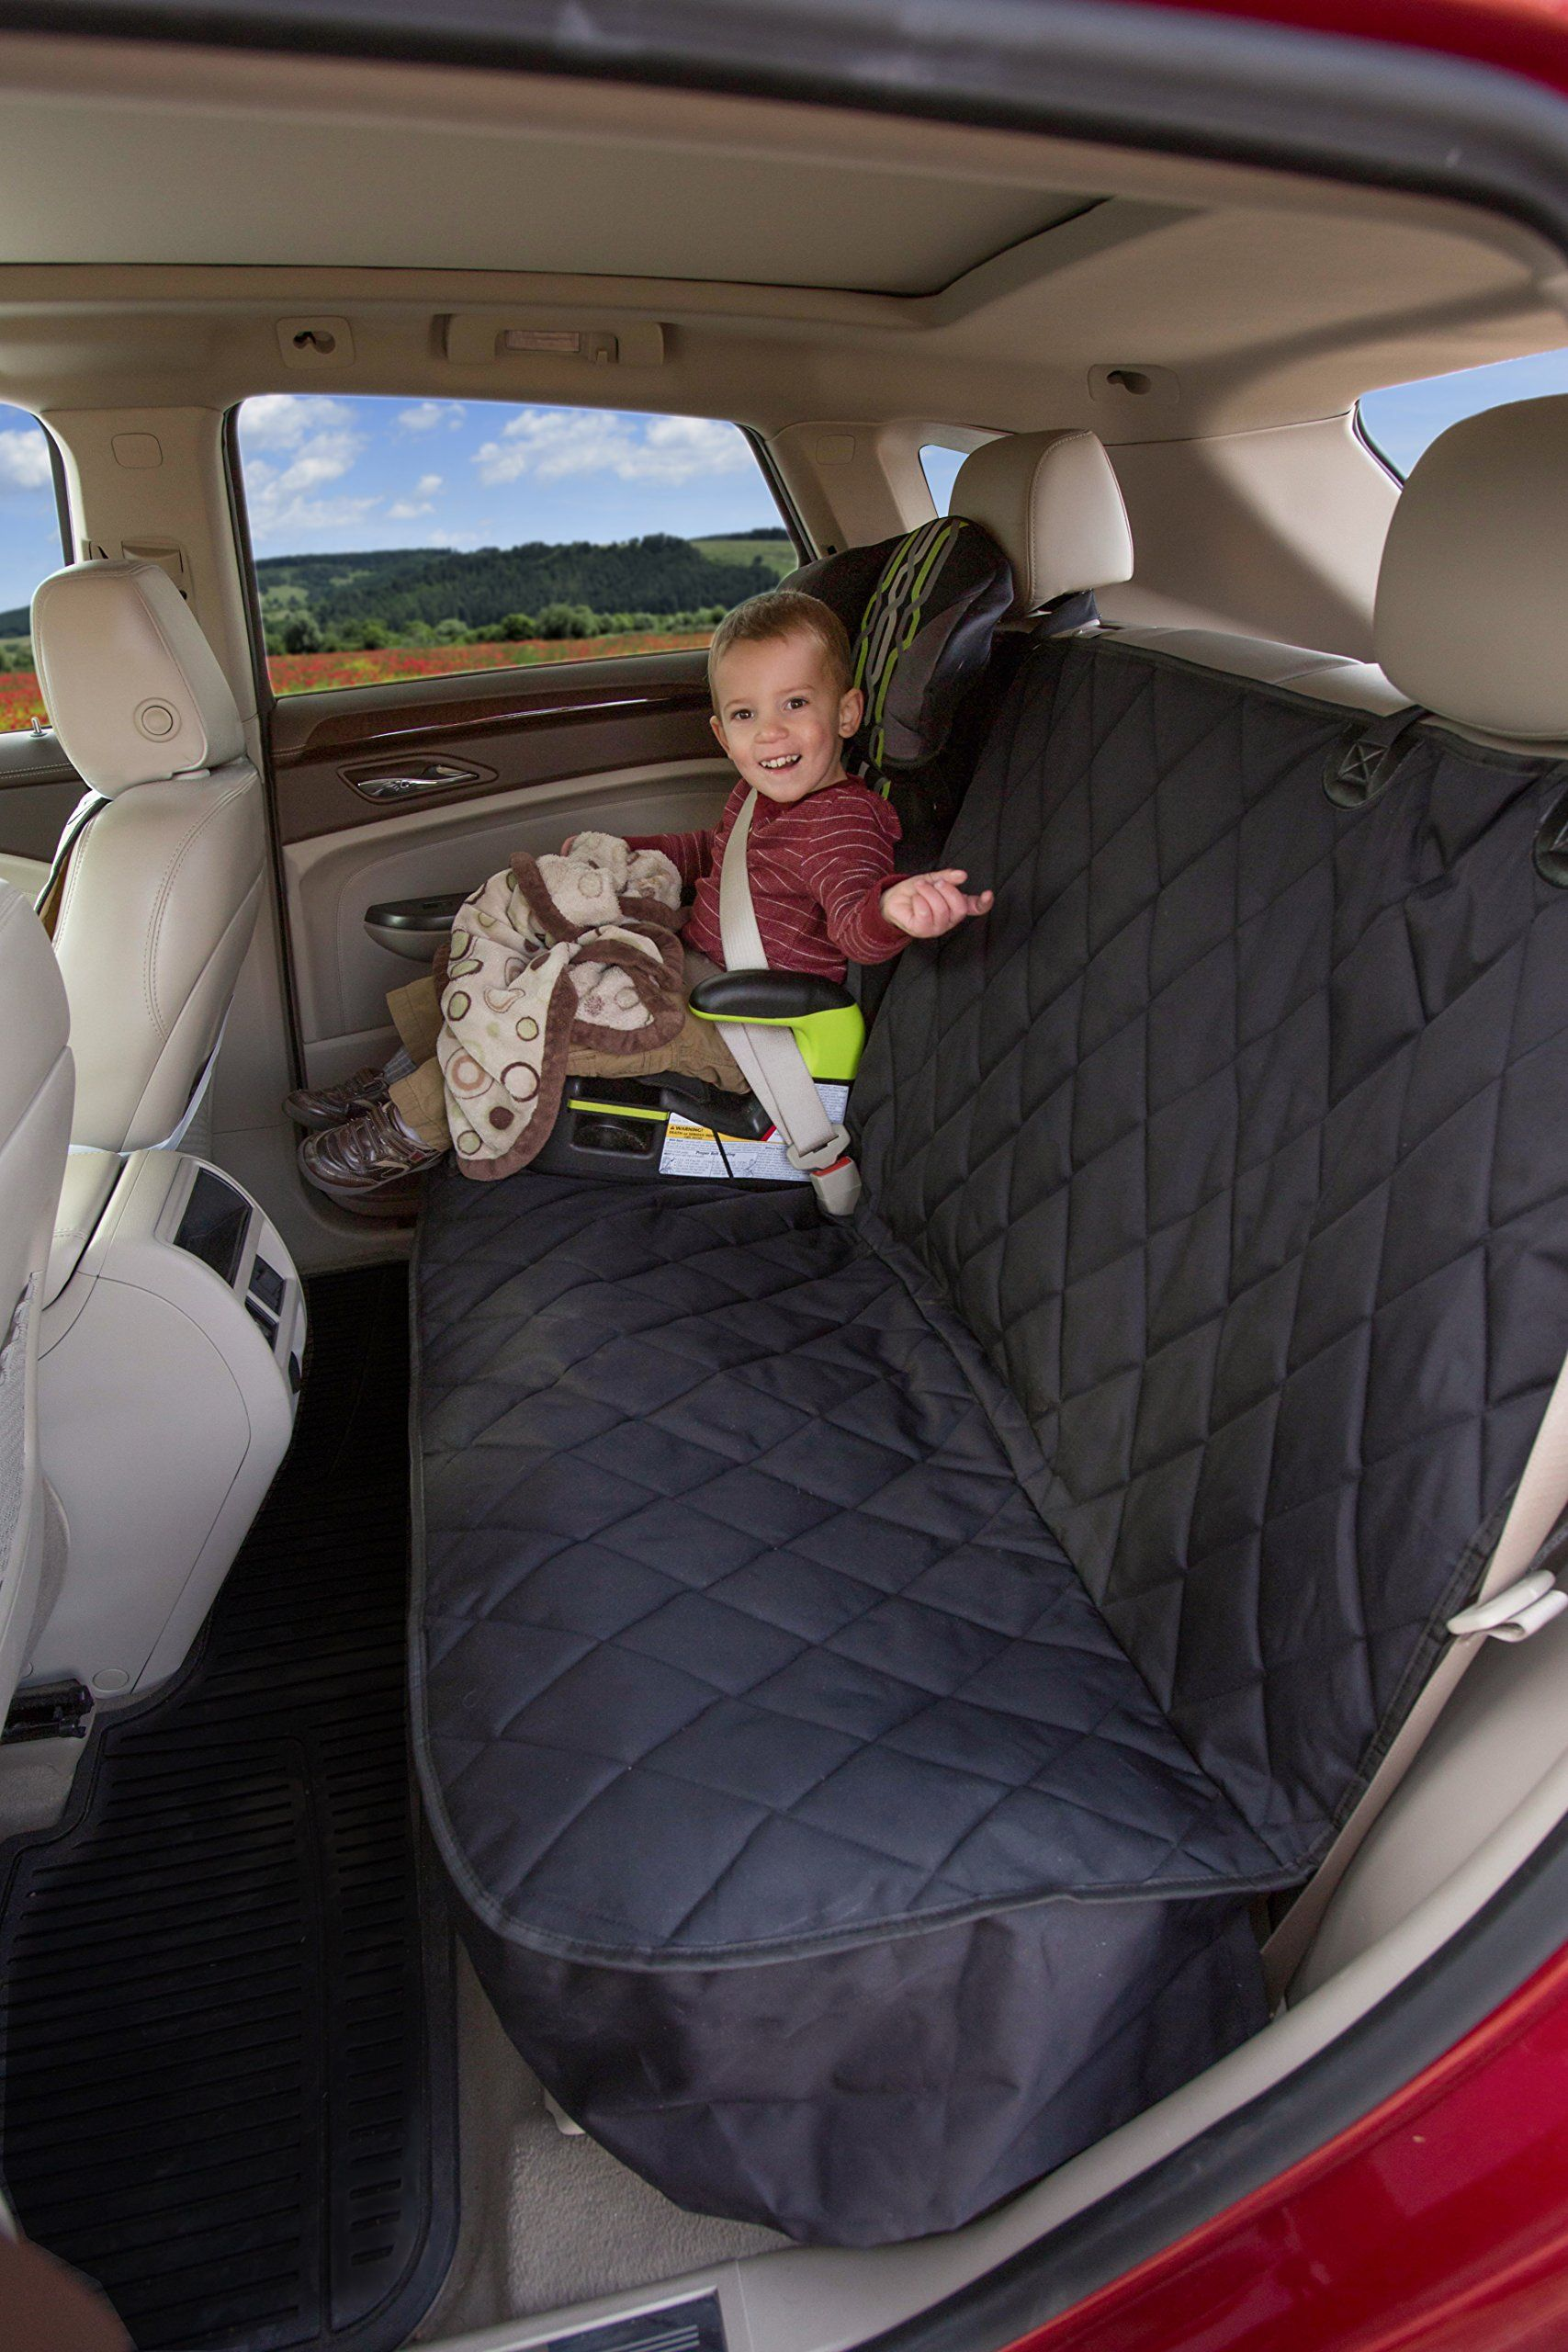 Car Bench Seat Covers >> Car Seat Protector Mat - Covers Entire Rear Seat - Black ...